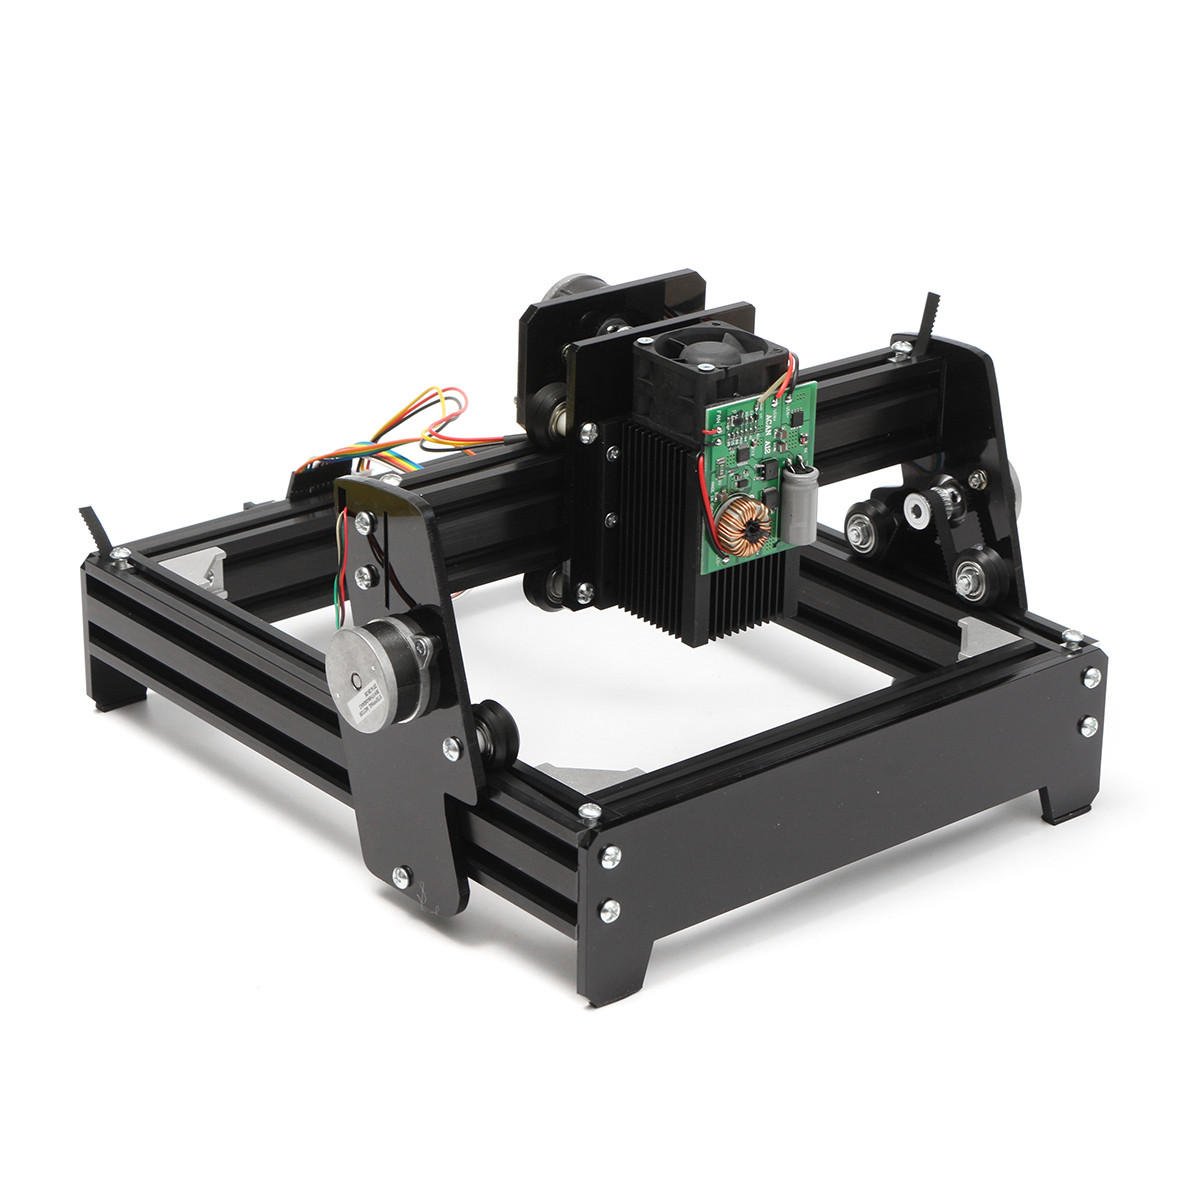 10W Mini DIY Laser Engraver Cutter Metal Stone Engraver Woodworking Engraving Machine 20×14CM